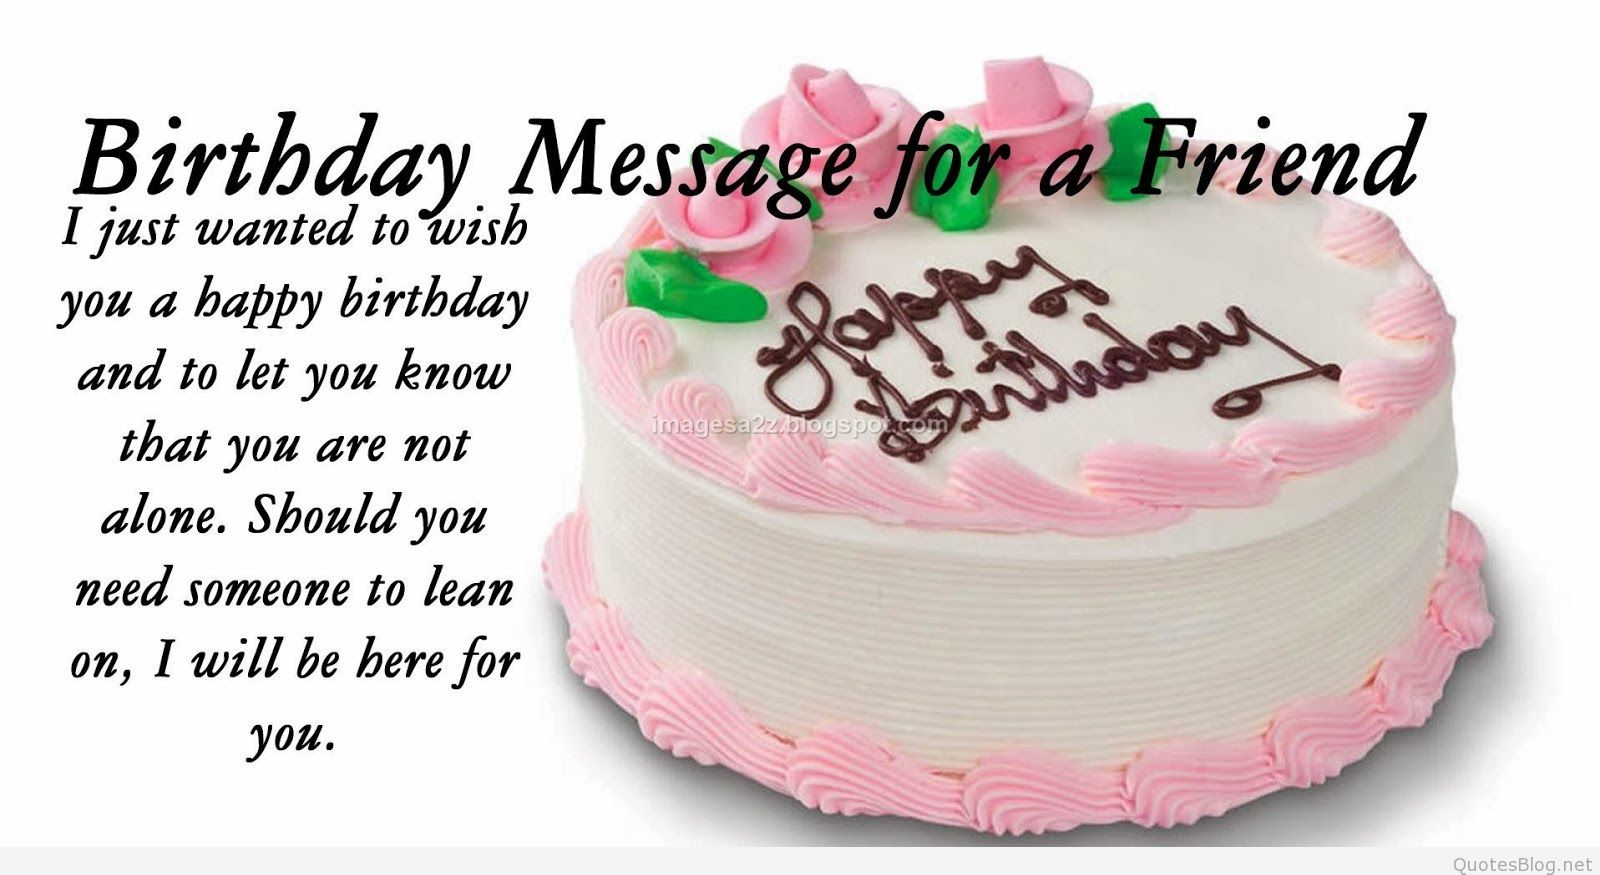 birthdaywishesforfriendsquotes3 Quotes – Quotes About Birthday Greetings